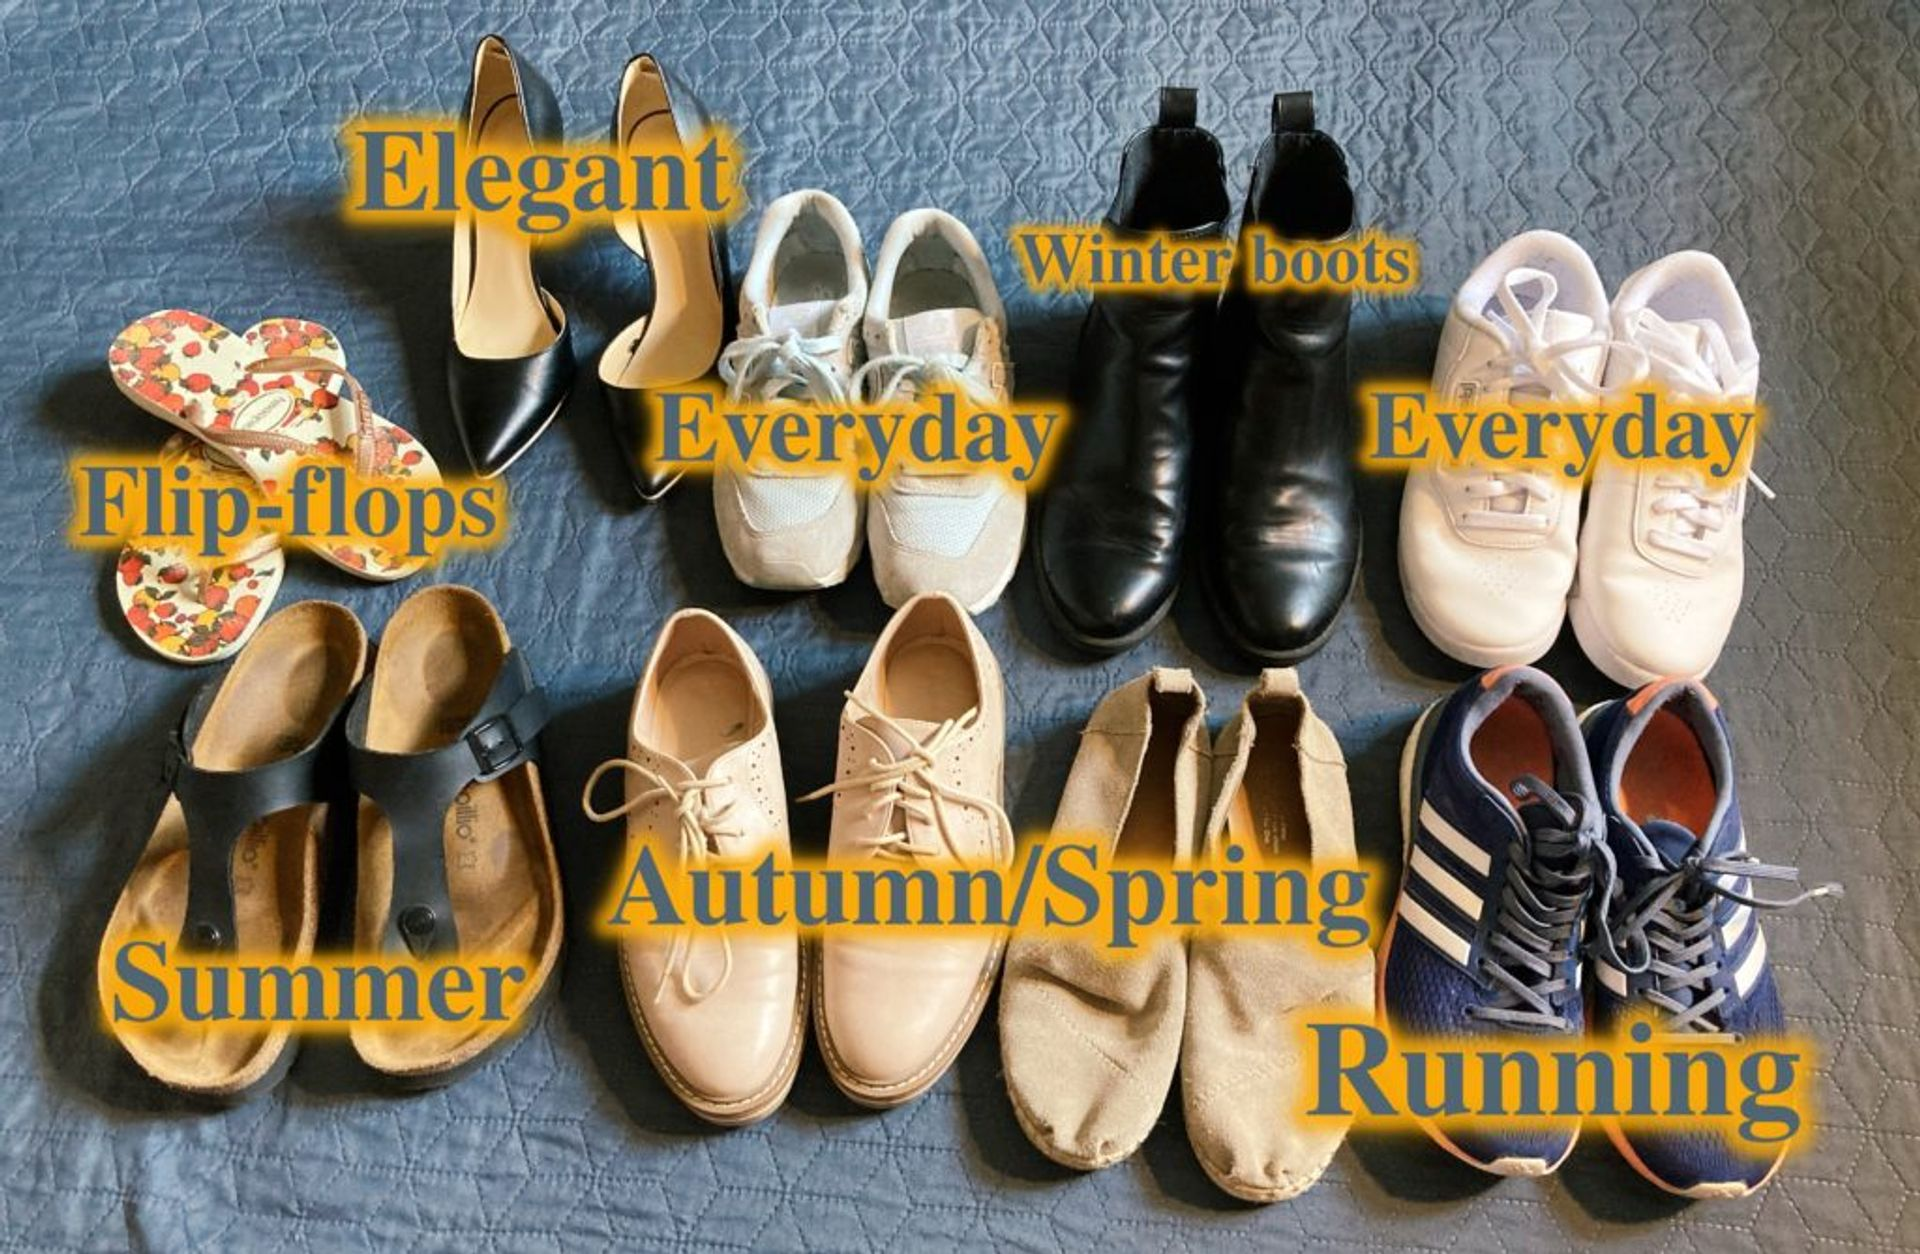 A mixture of different shoes for different occasions.